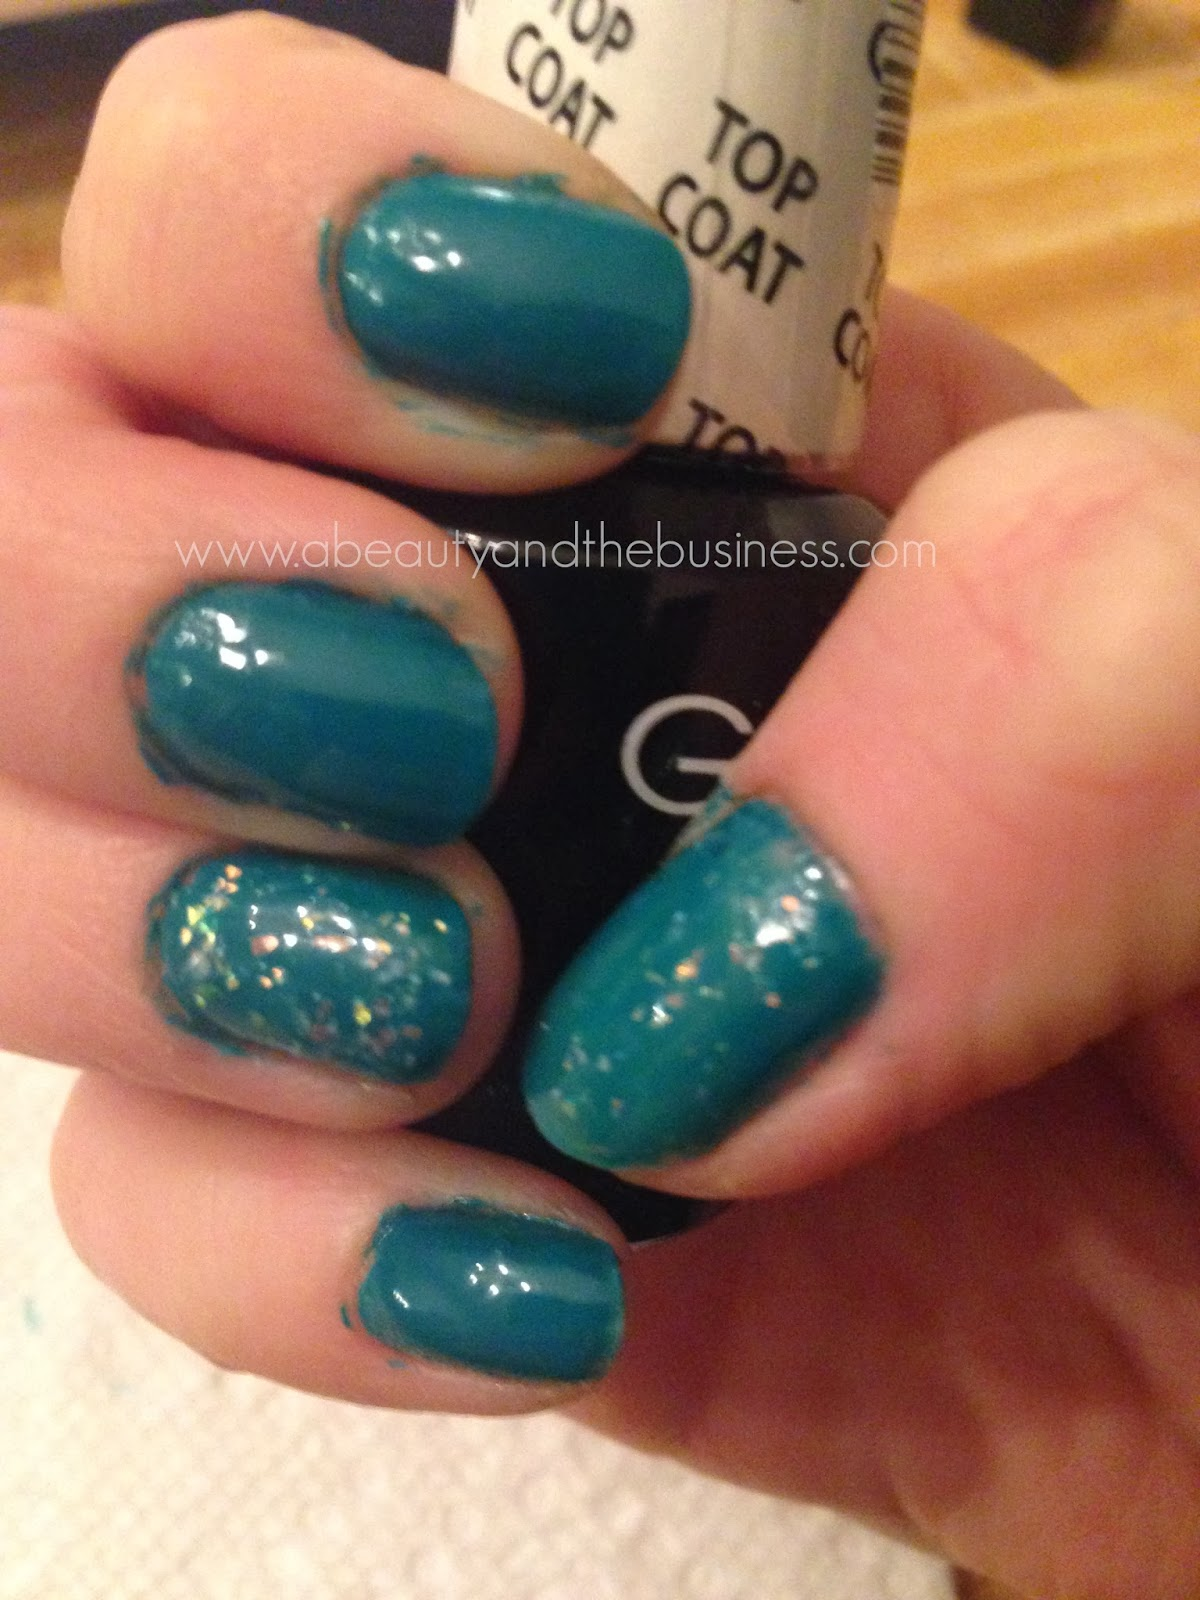 gelish Garden Teal Party, accent nails: Trends Rough Around The Edges, gelish garden teal party swatch, trends rough around the edges swatch, gelish swatch